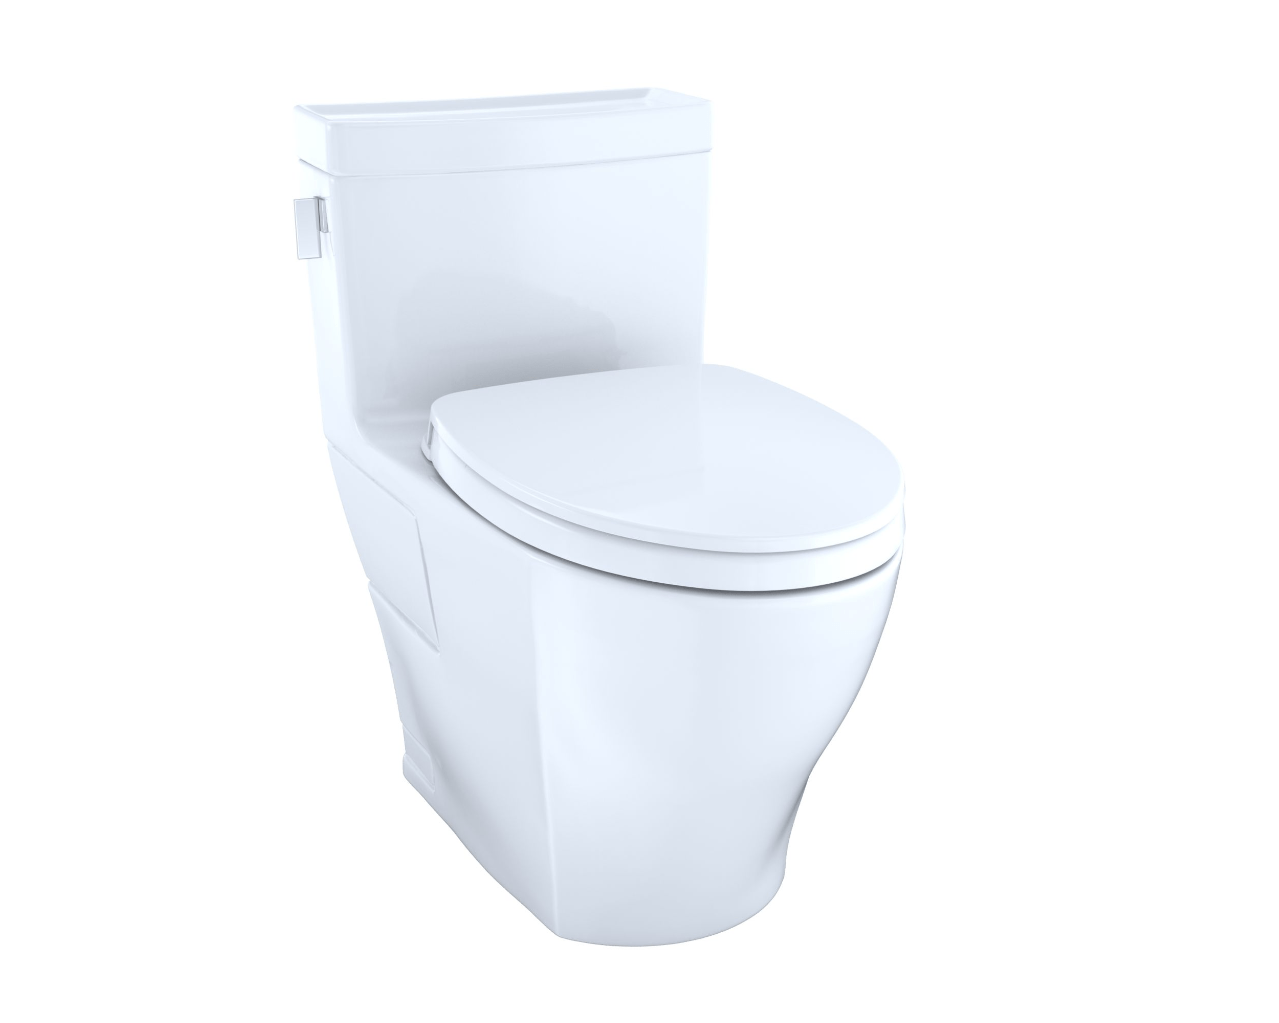 Toto MW6243046CEFG#01 Legato WASHLET+ Kit One-Piece Elongated 1.28 ...